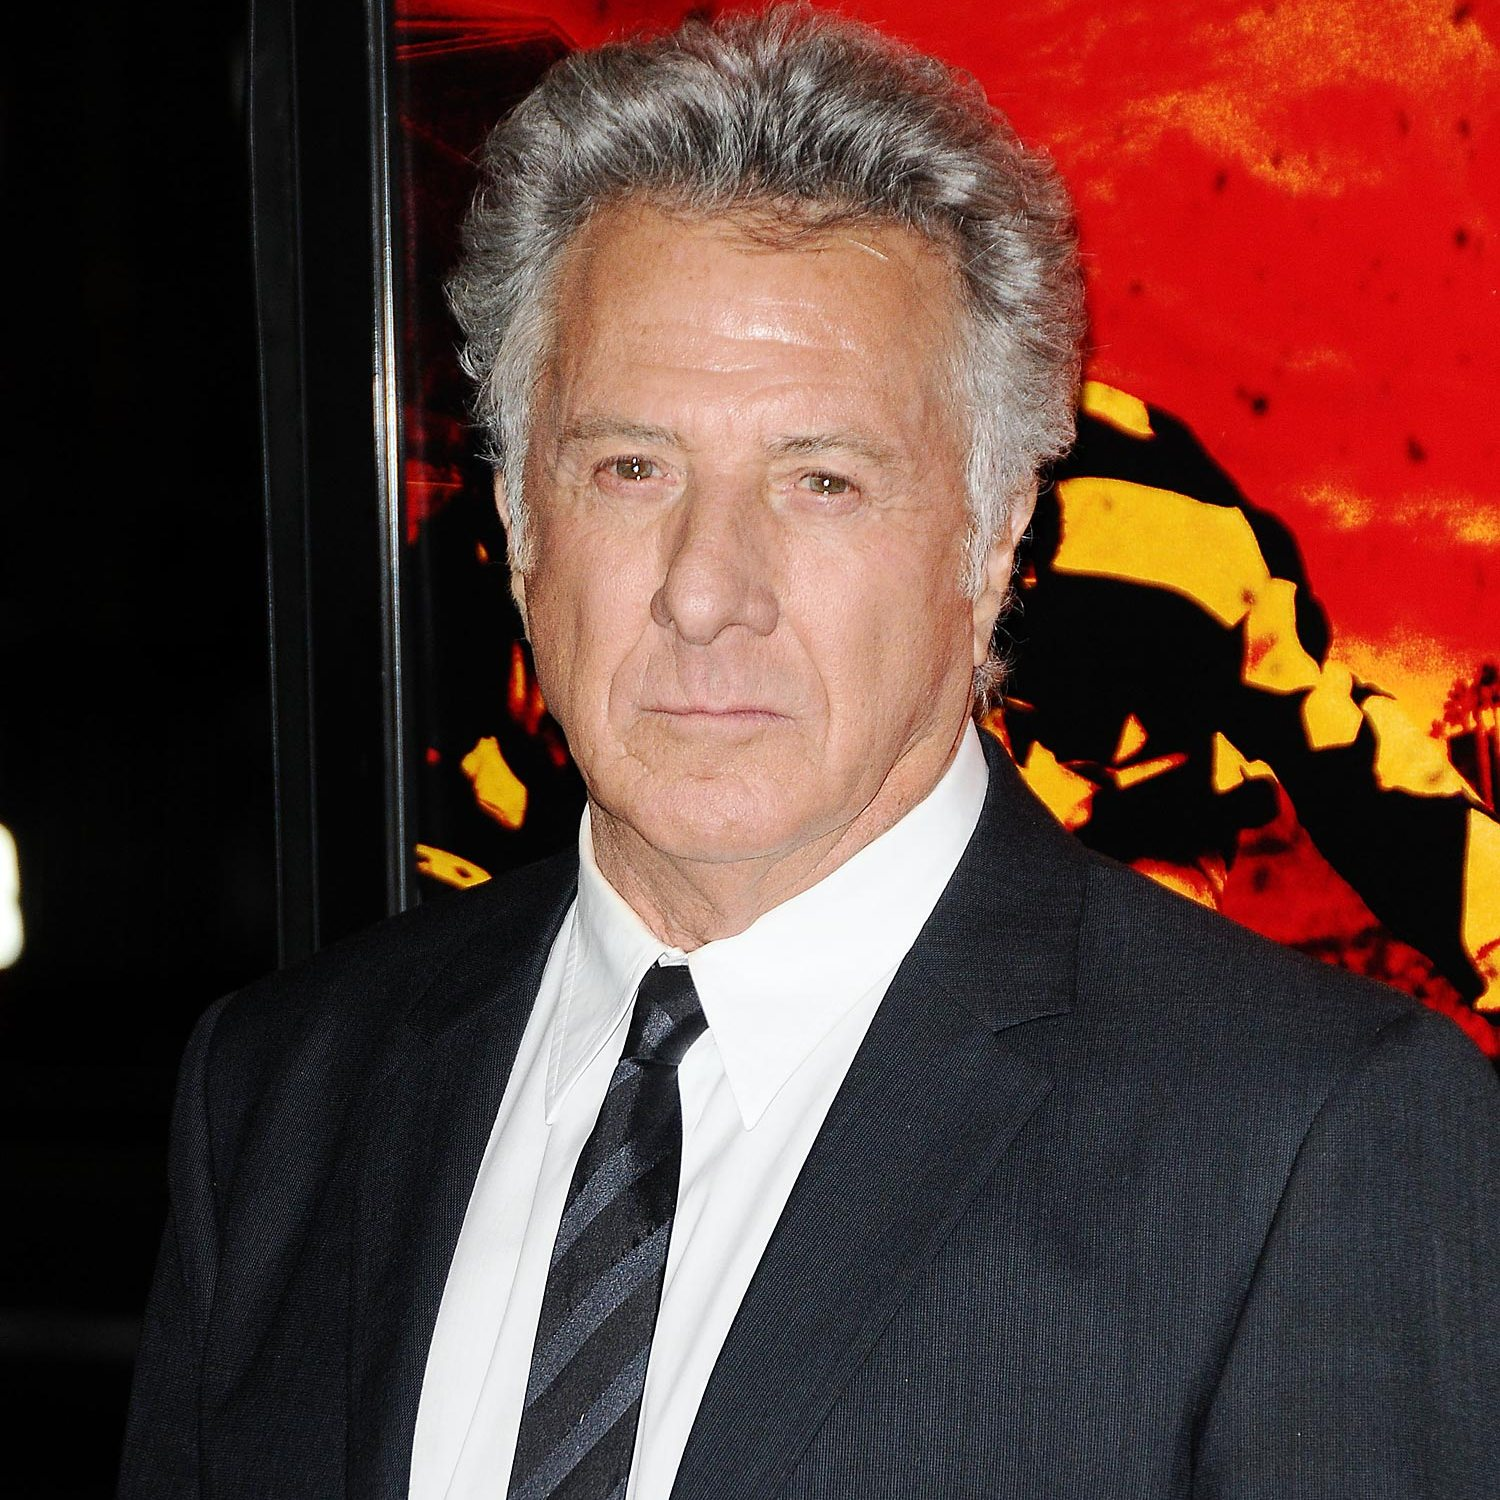 Dustin Hoffman on January 25, 2012 in Hollywood, California